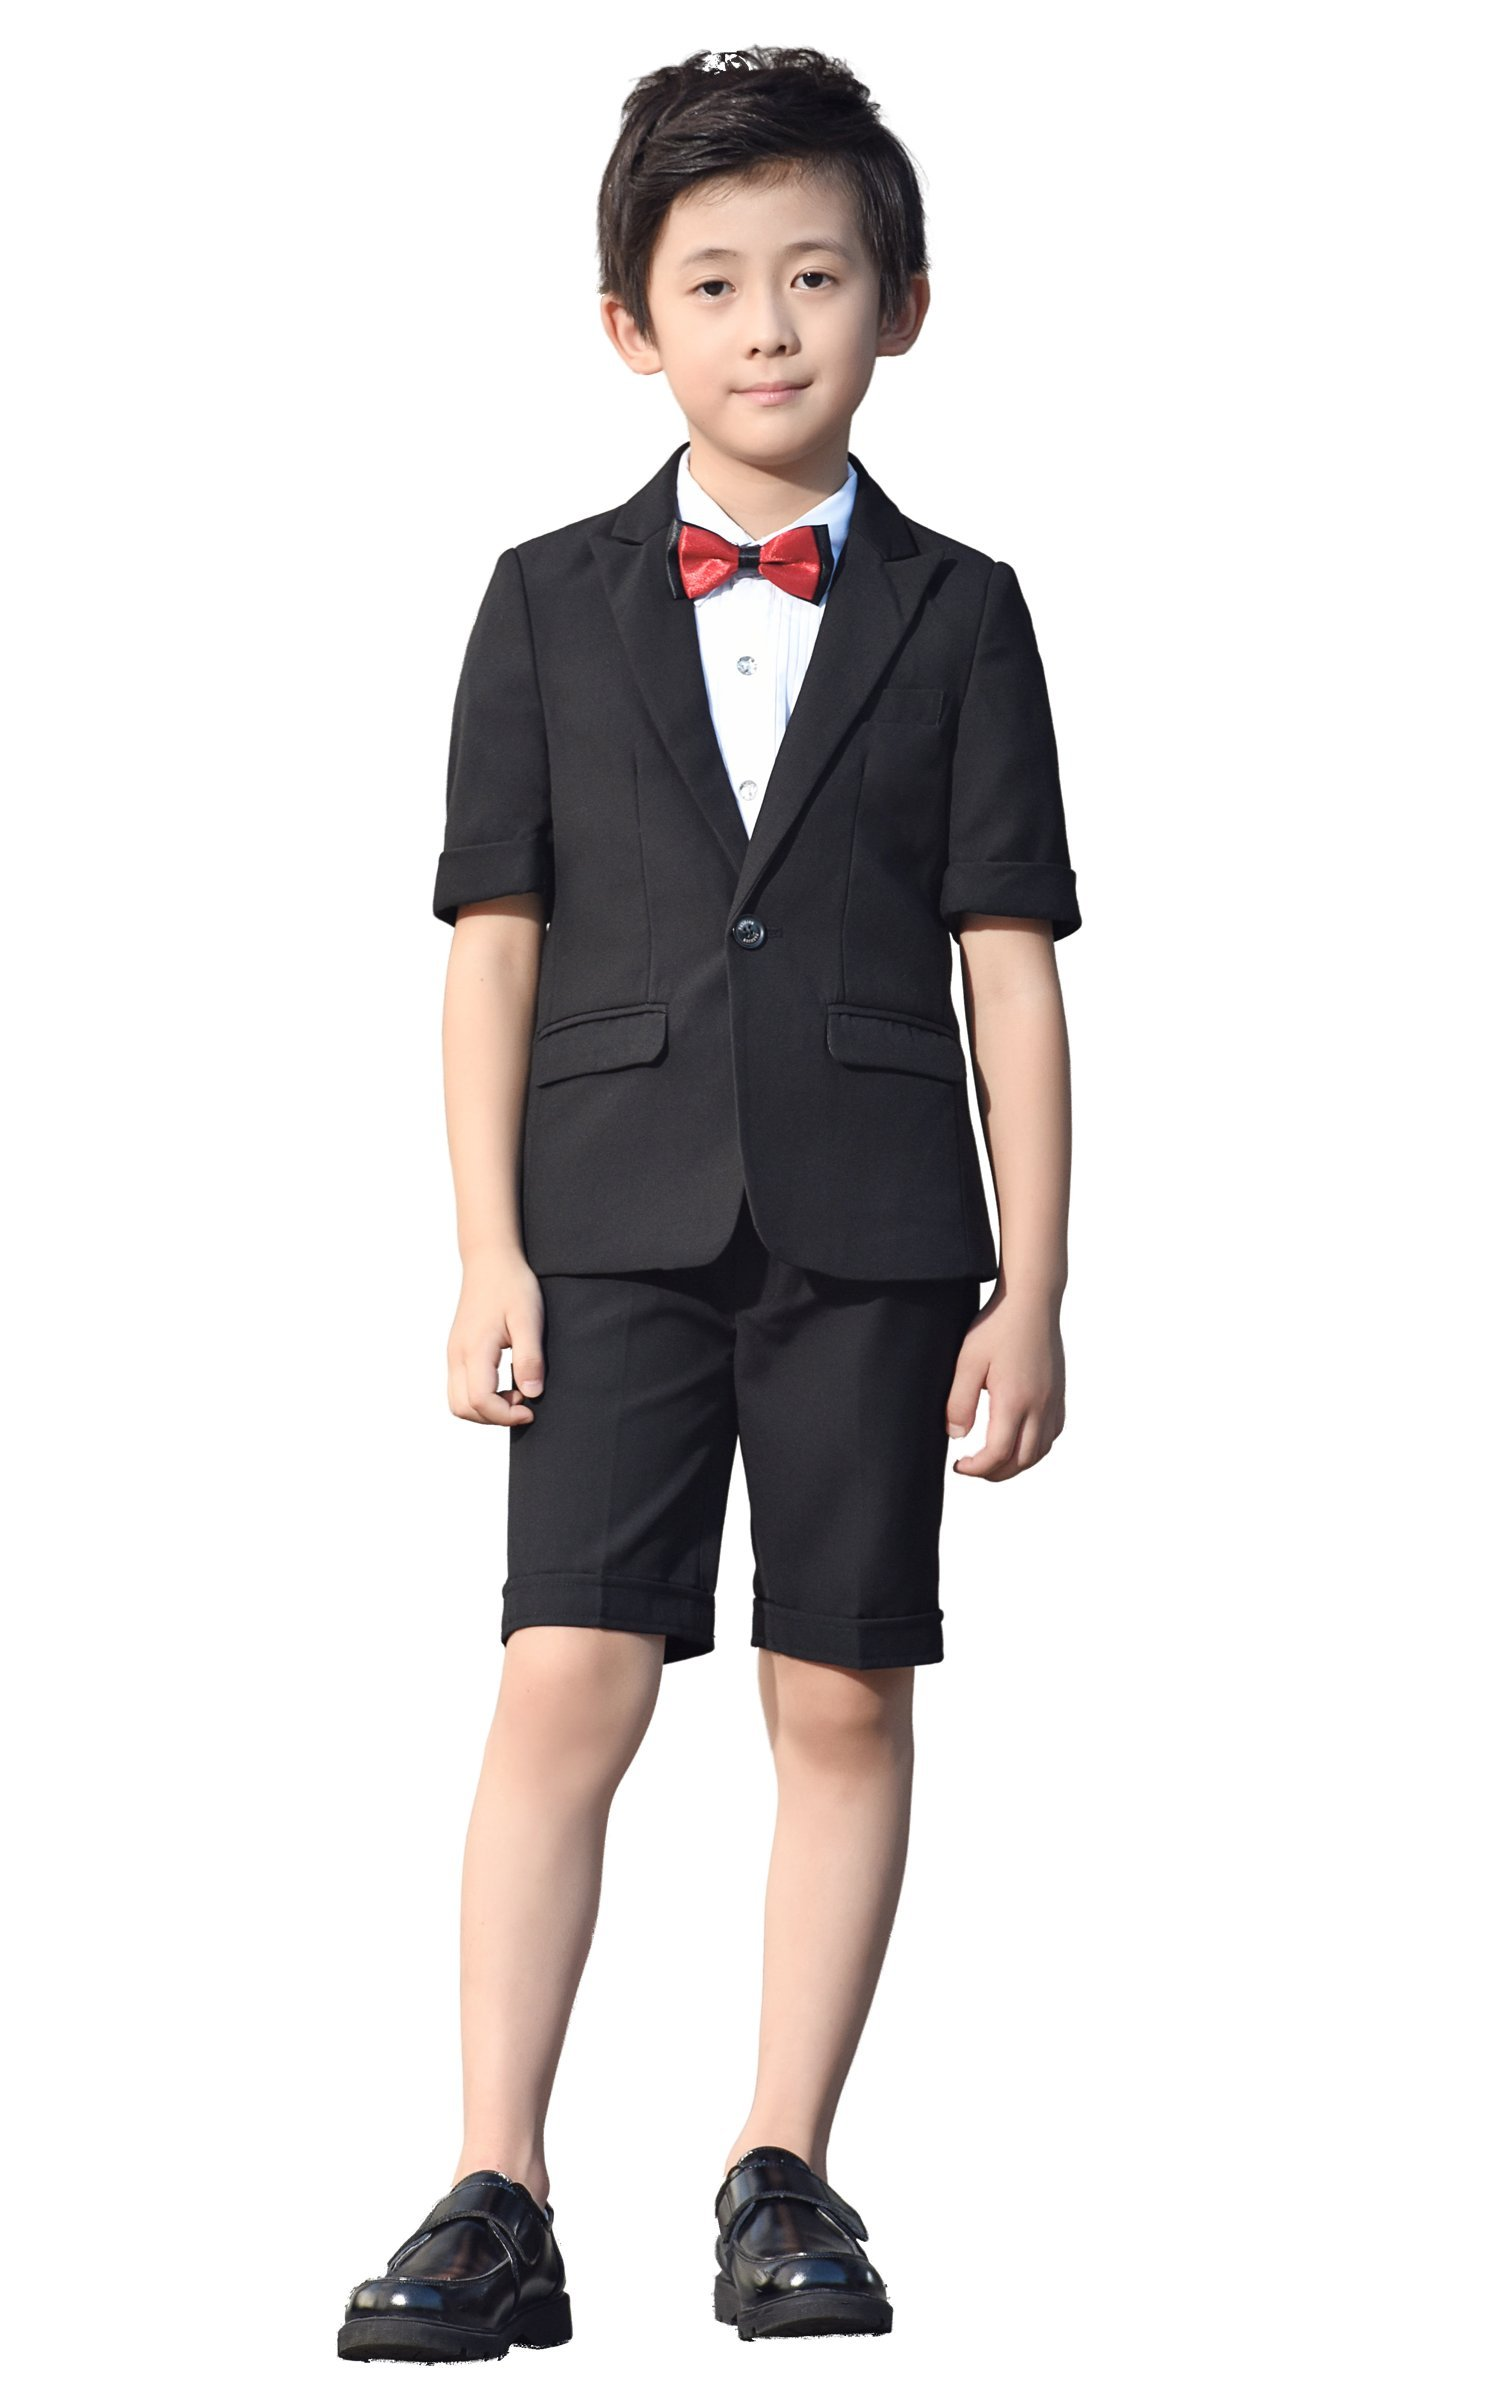 Iyan Boys Short Suits 5 Piece Slim Fit Suit for Boys Black Size 4T